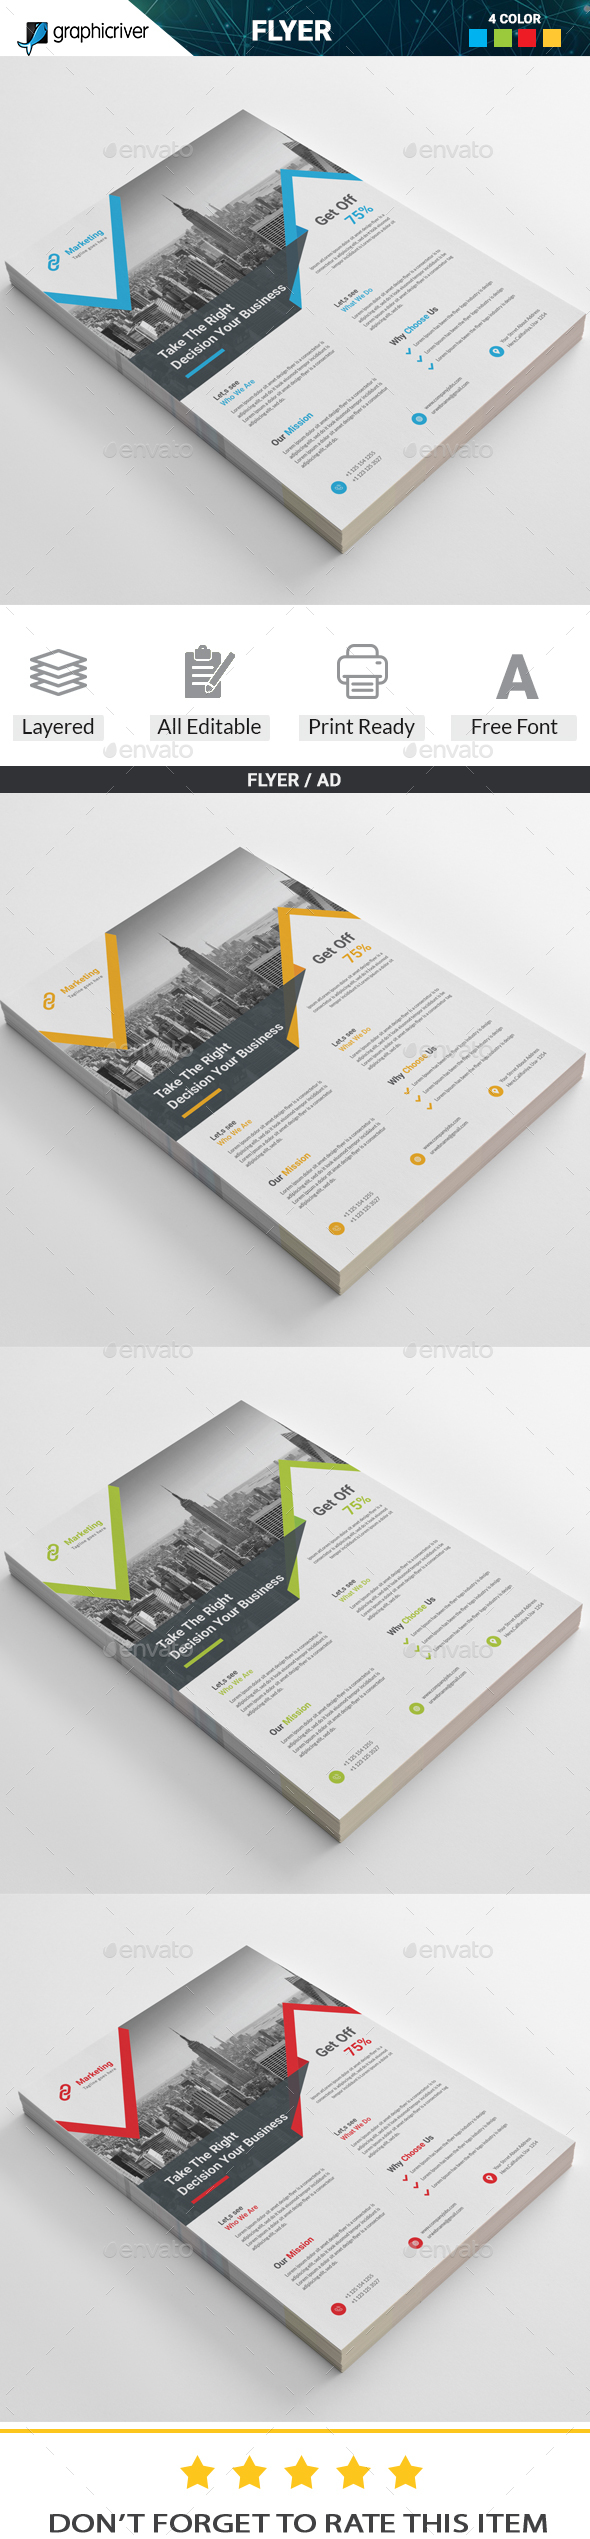 Flyer - Corporate Flyers Download here: https://graphicriver.net/item/flyer/19863707?ref=classicdesignp